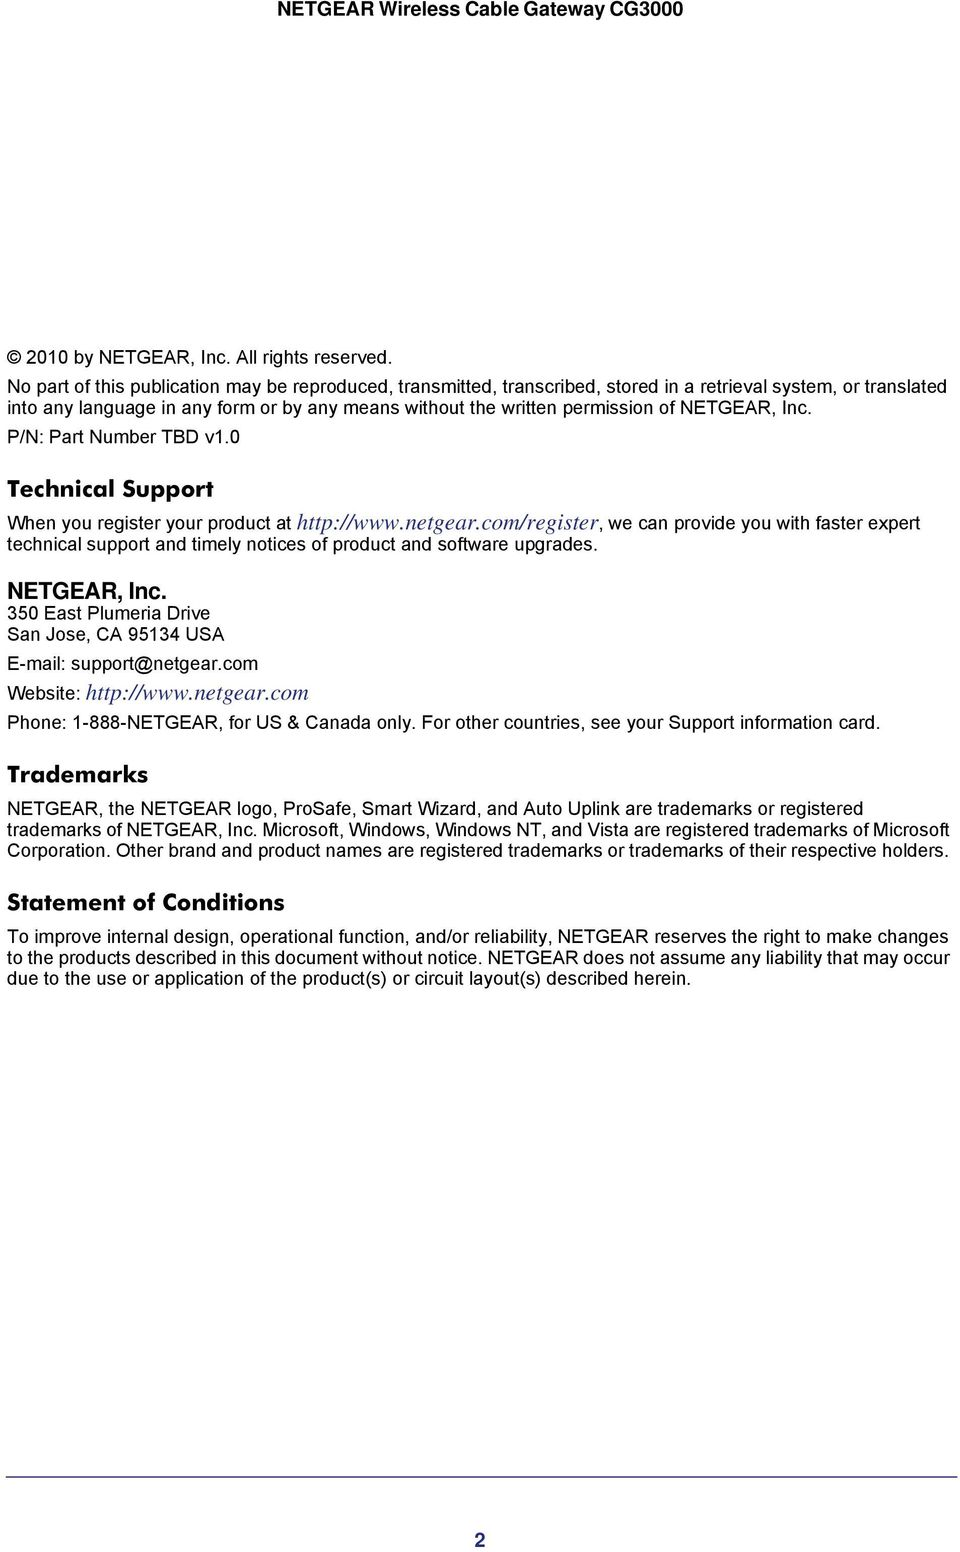 NETGEAR, Inc. P/N: Part Number TBD v1.0 Technical Support When you register your product at http://www.netgear.